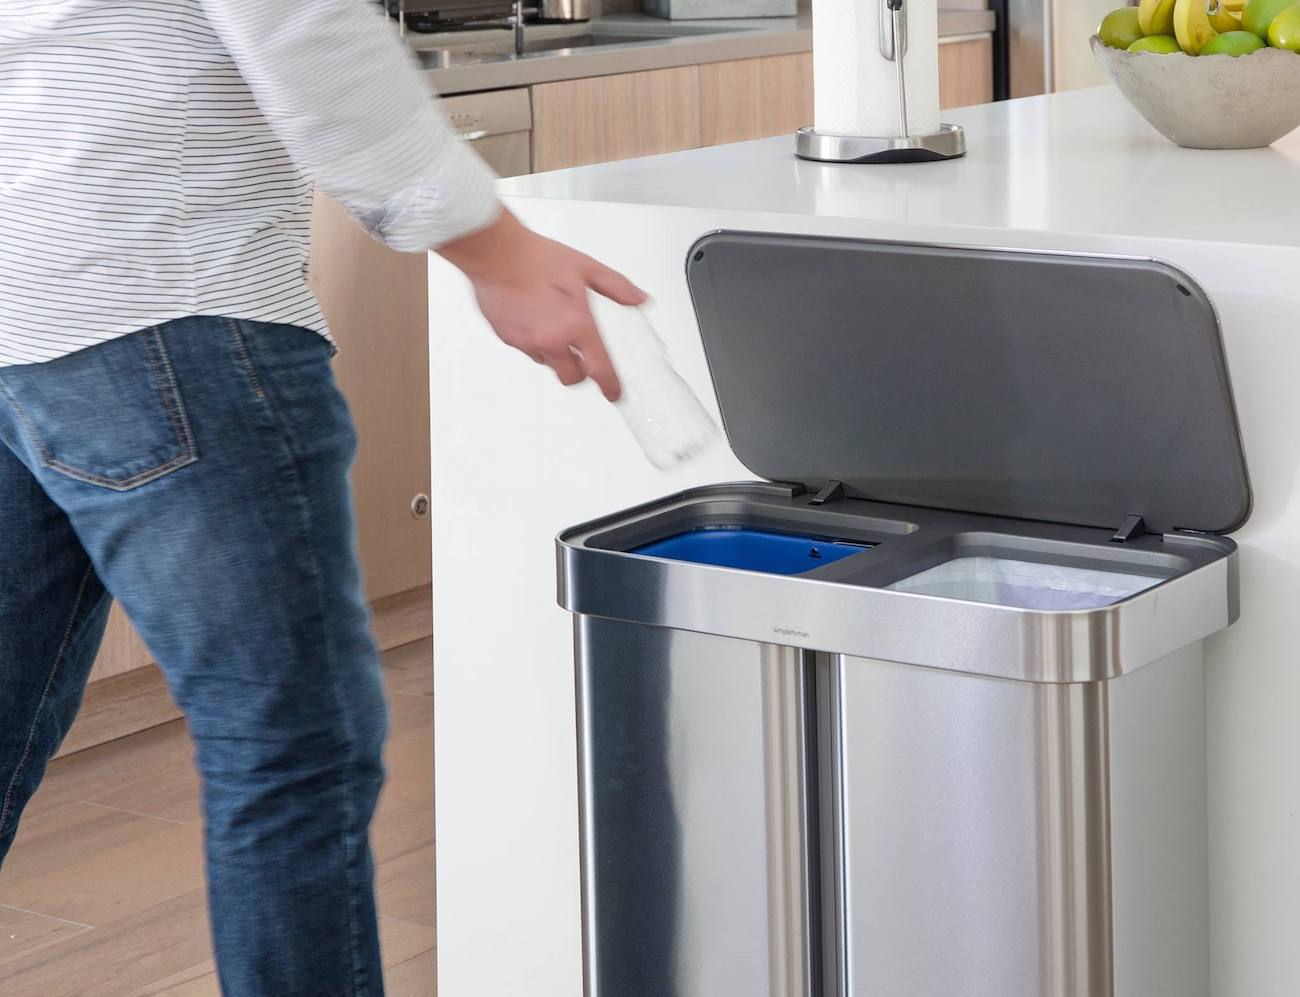 Dual Compartment Trash Cans